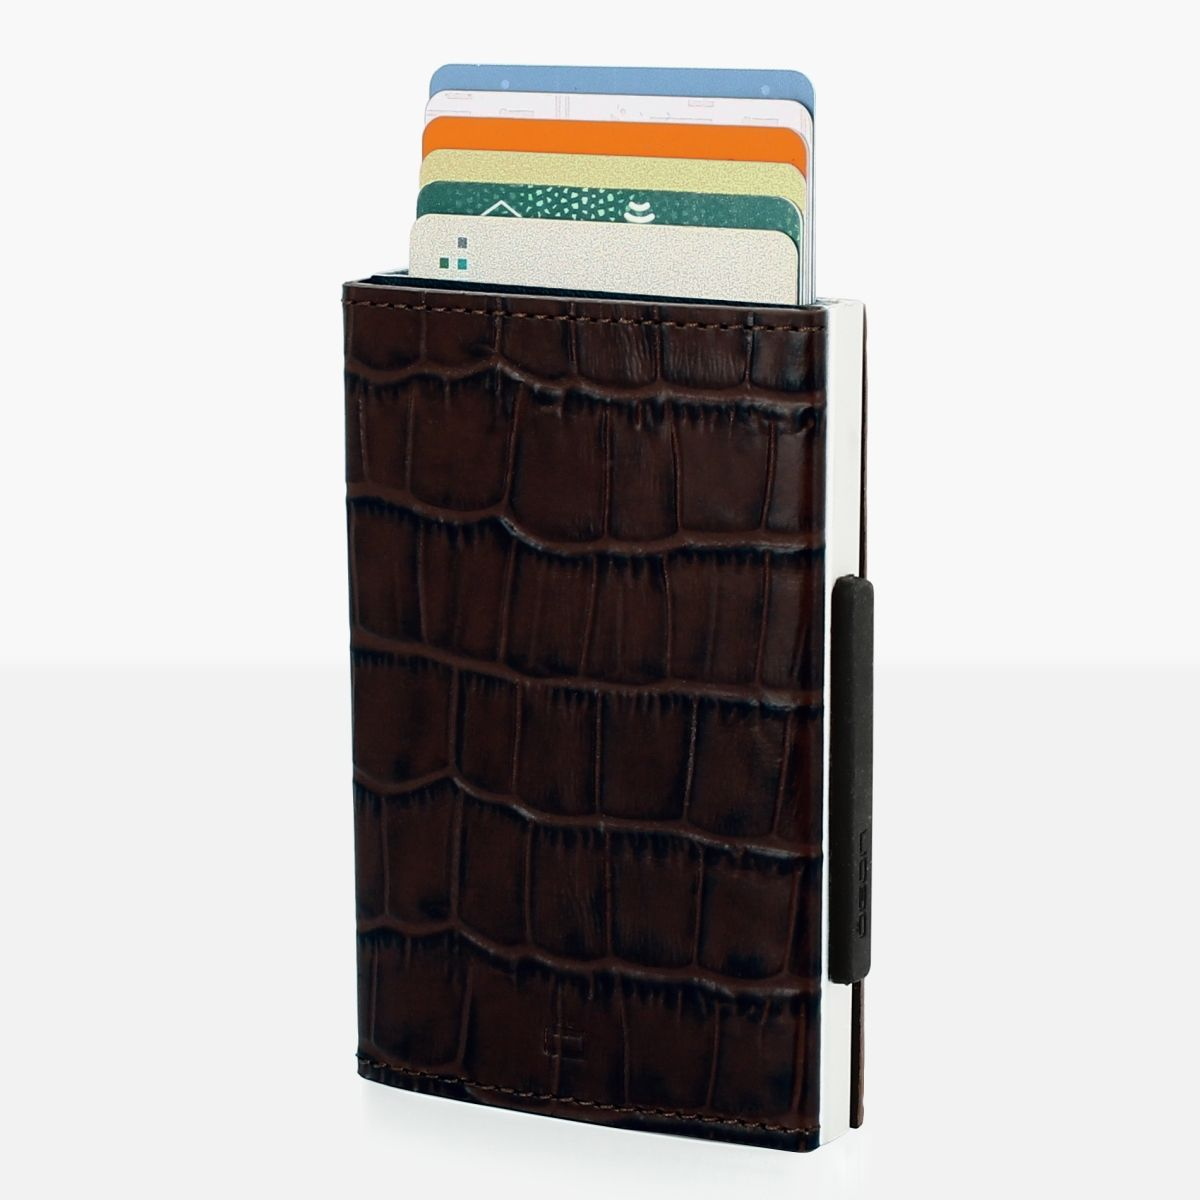 OGON Cascade Card Case Wallet - Croco